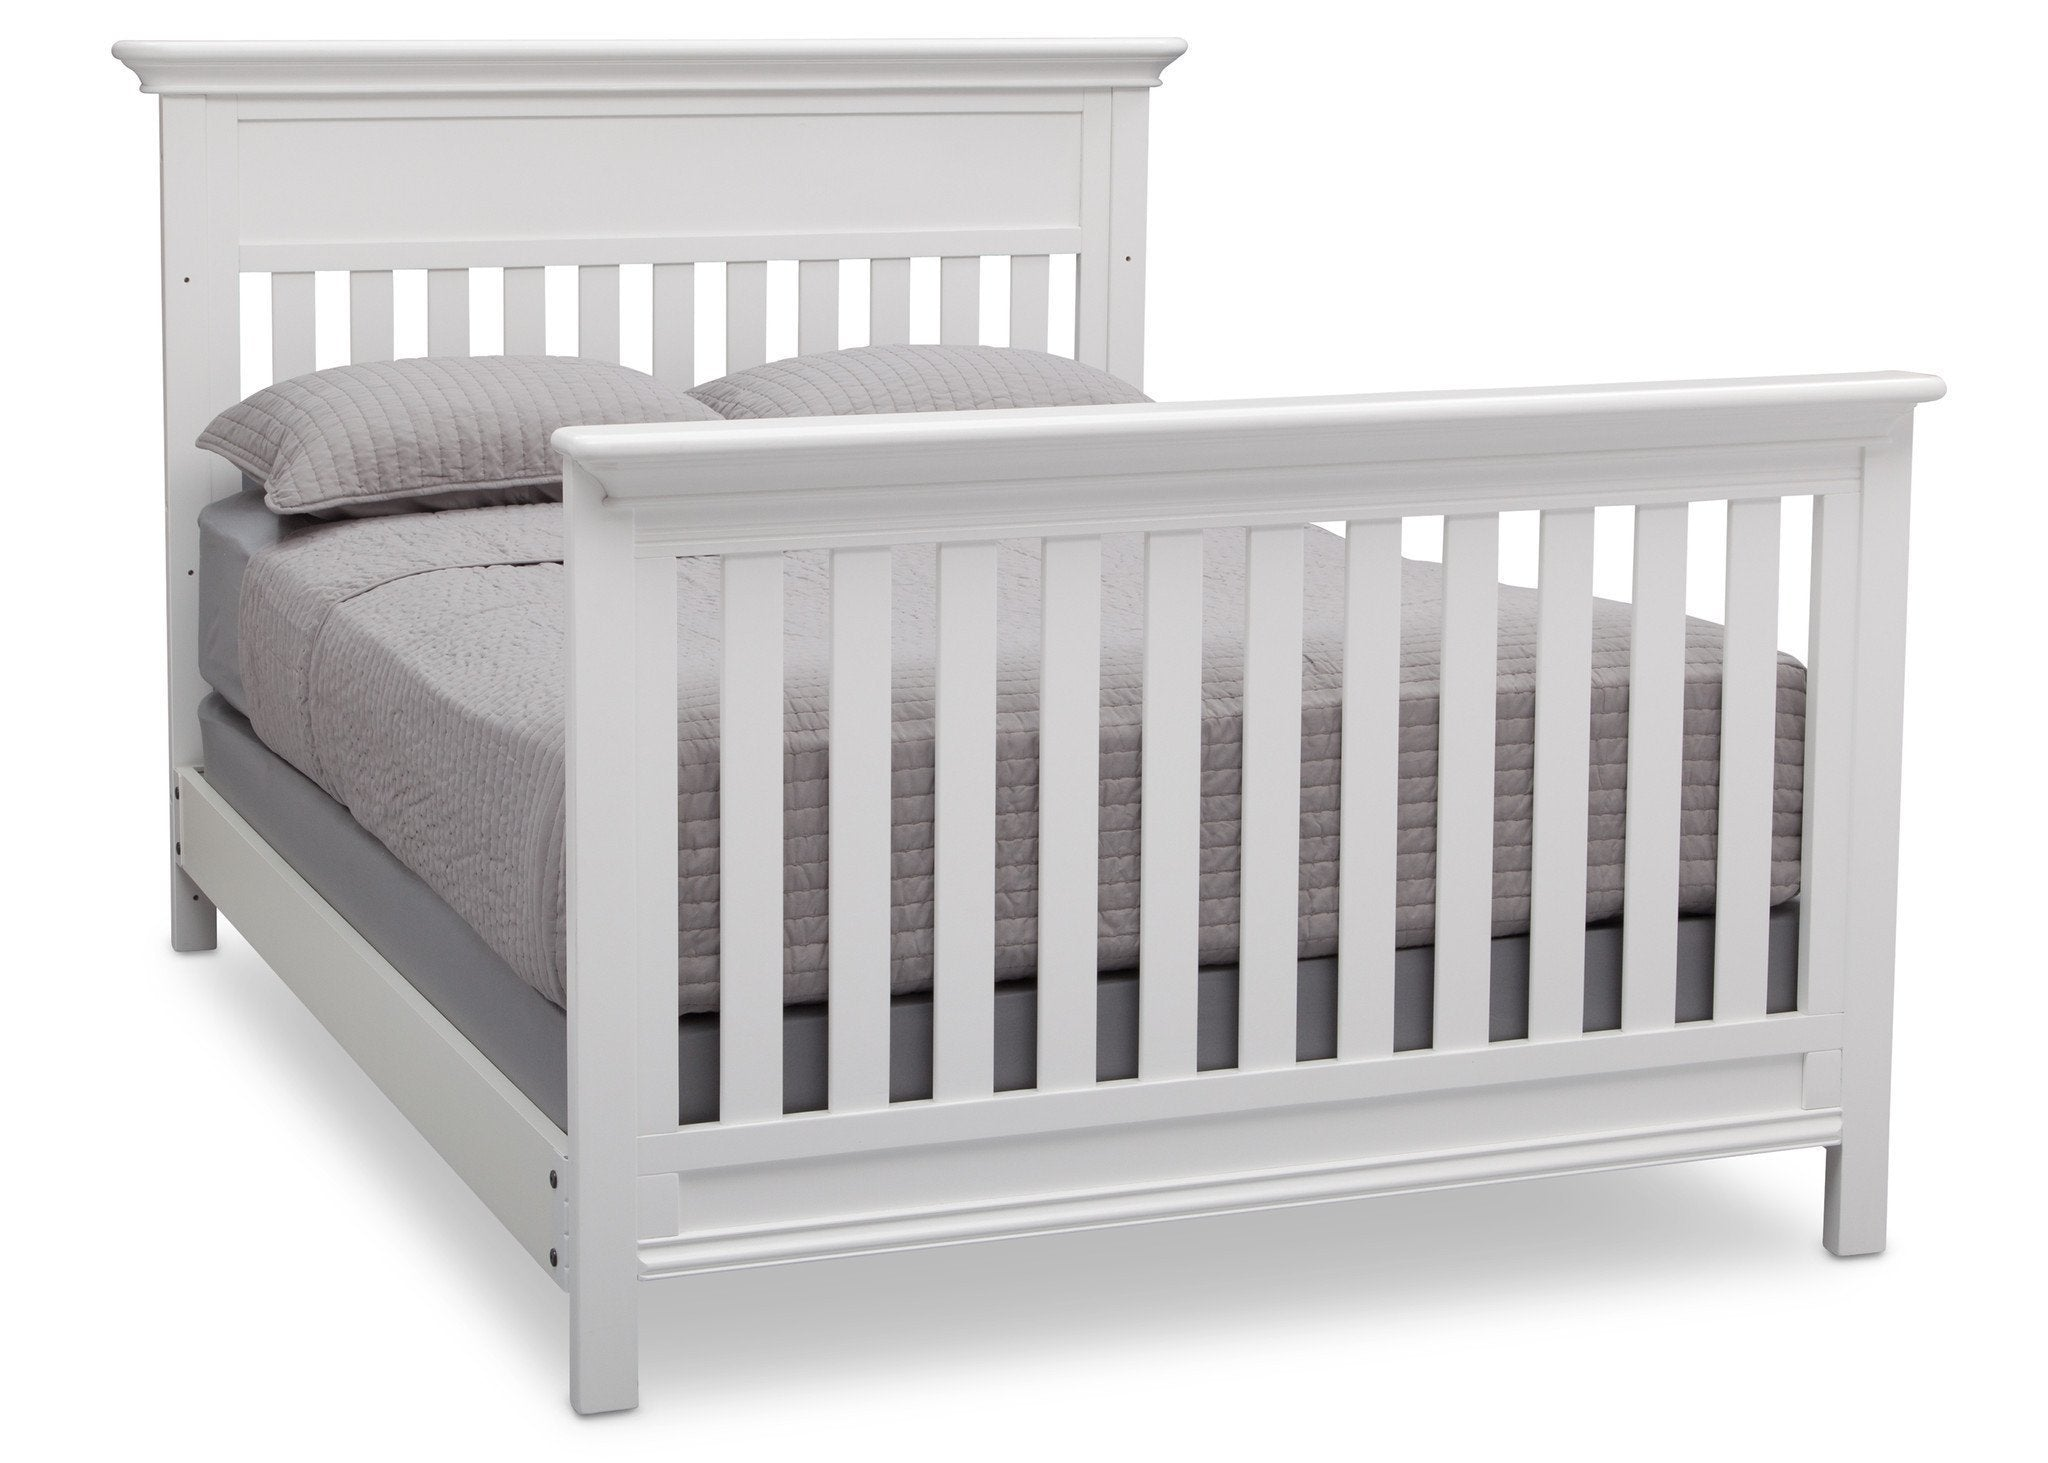 Serta Bianca (130) Fernwood 4-in-1 Crib, Side View with Full Size Platform Bed Kit (for 4-in-1 Cribs) 700850 a7a